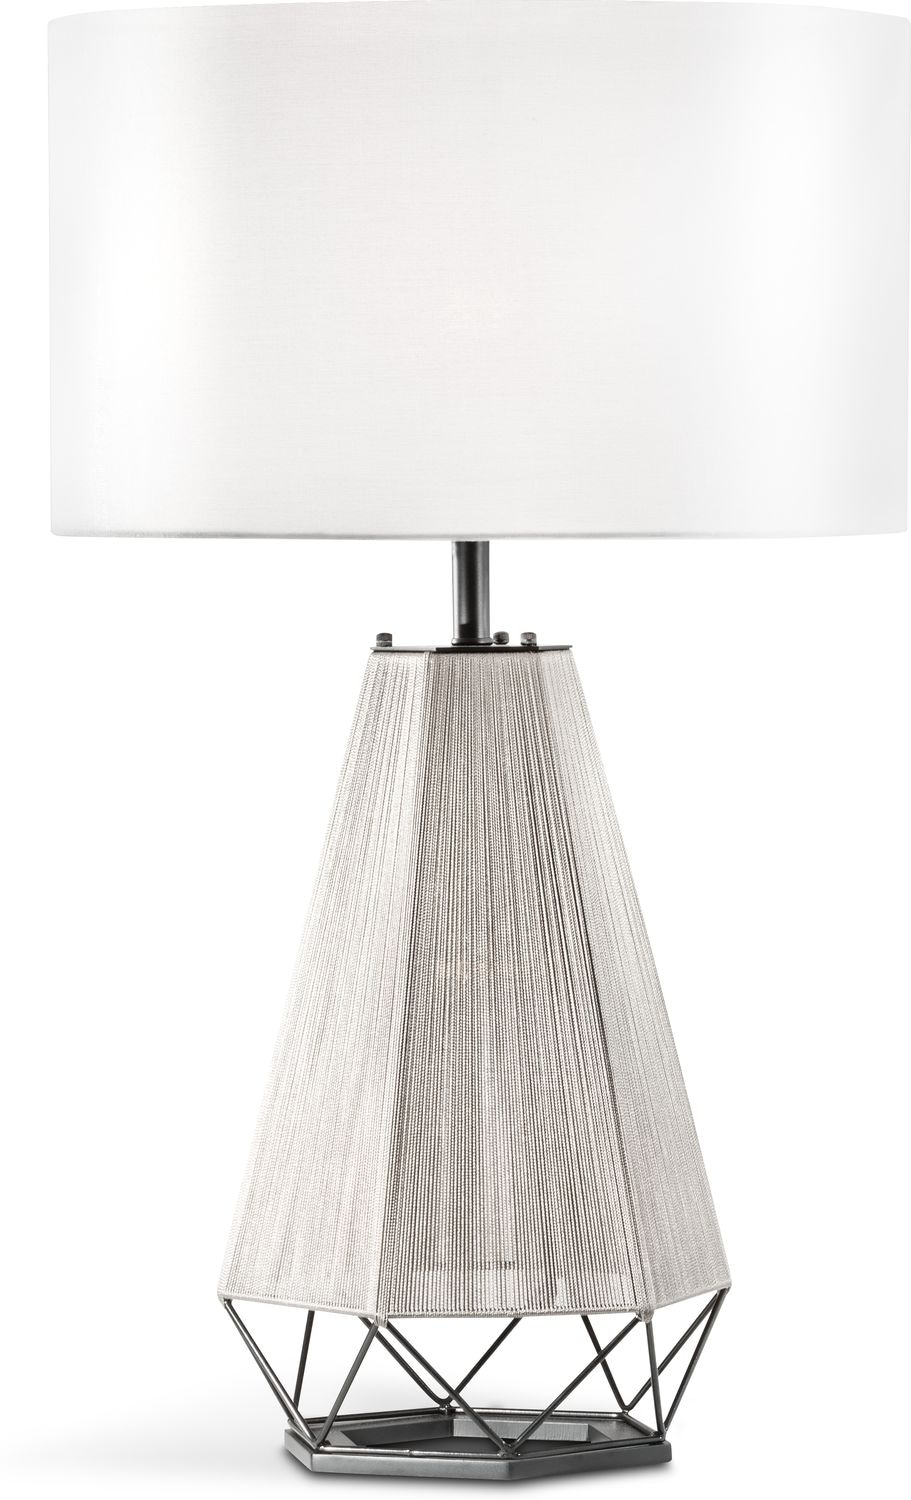 Home Accessories - Polygon Table Lamp